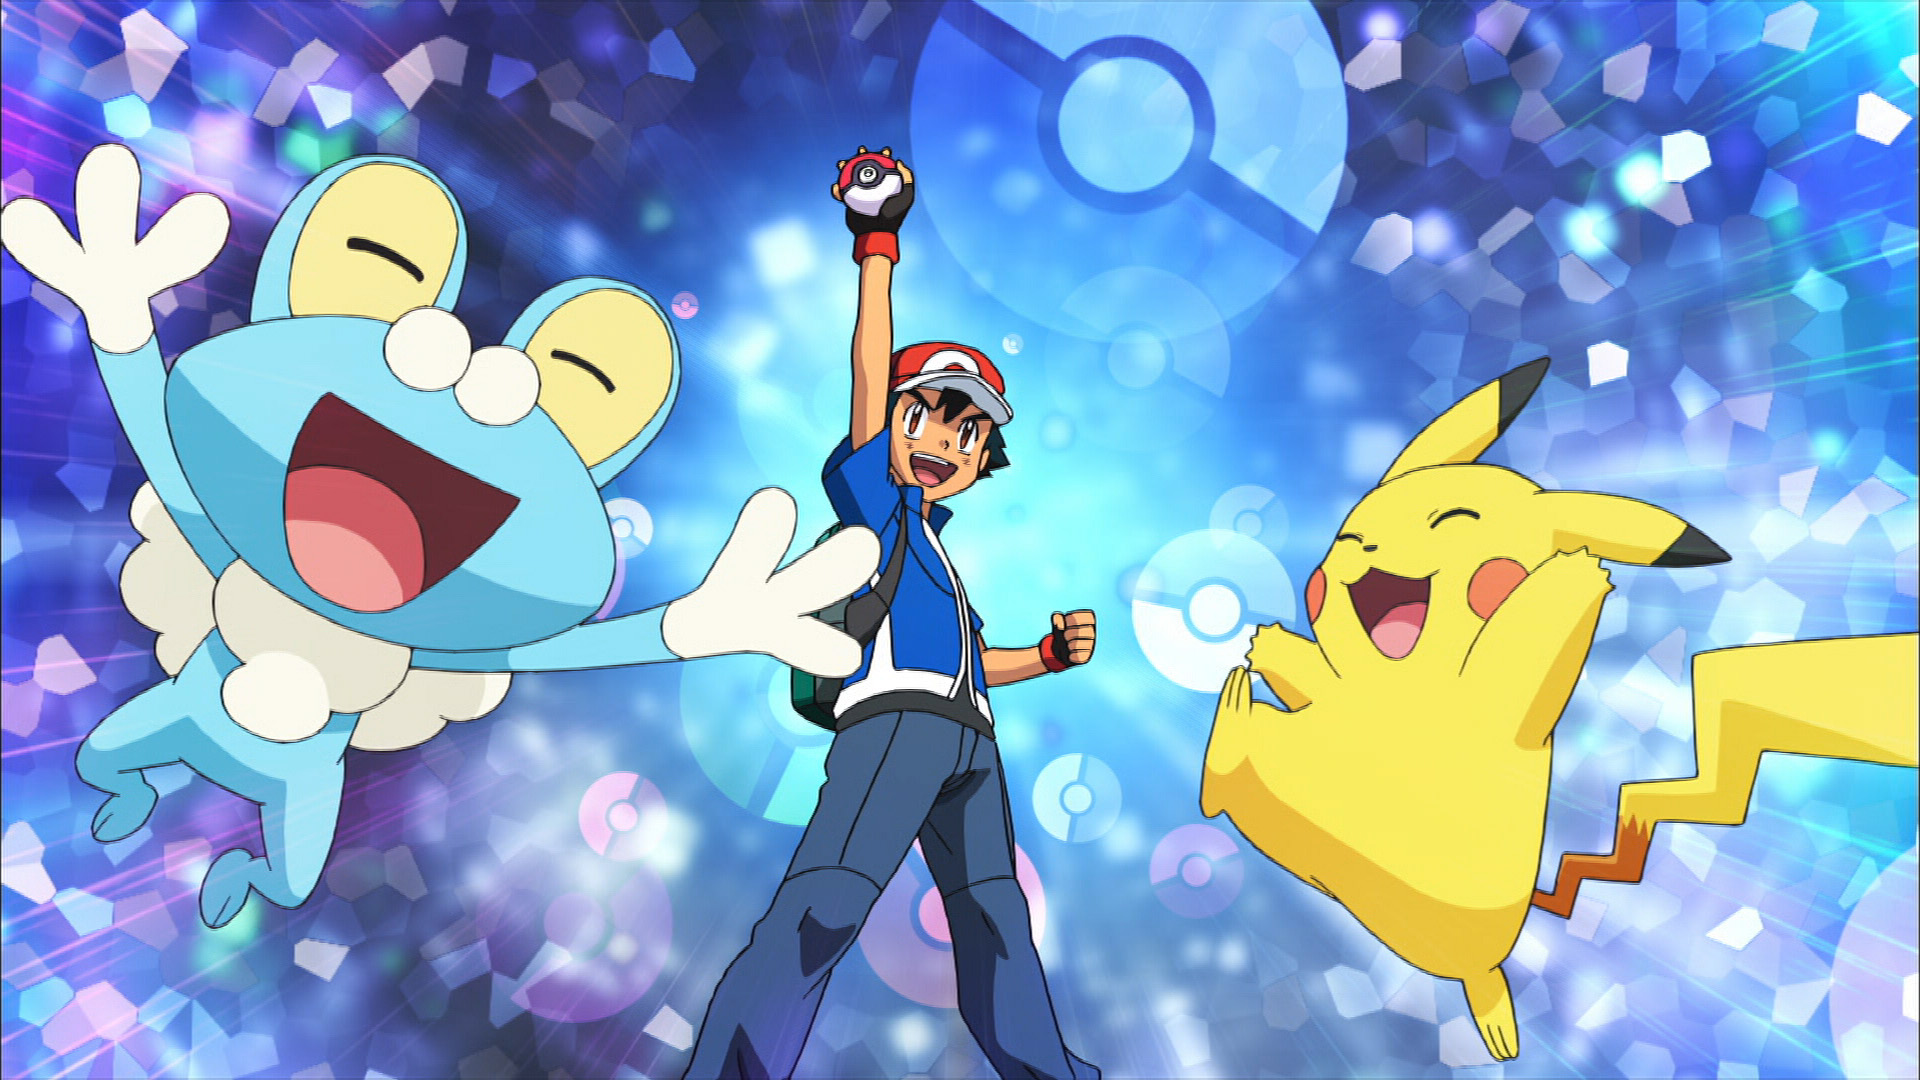 Pokémon now has a dedicated iTunes channel for cartoons, music and apps